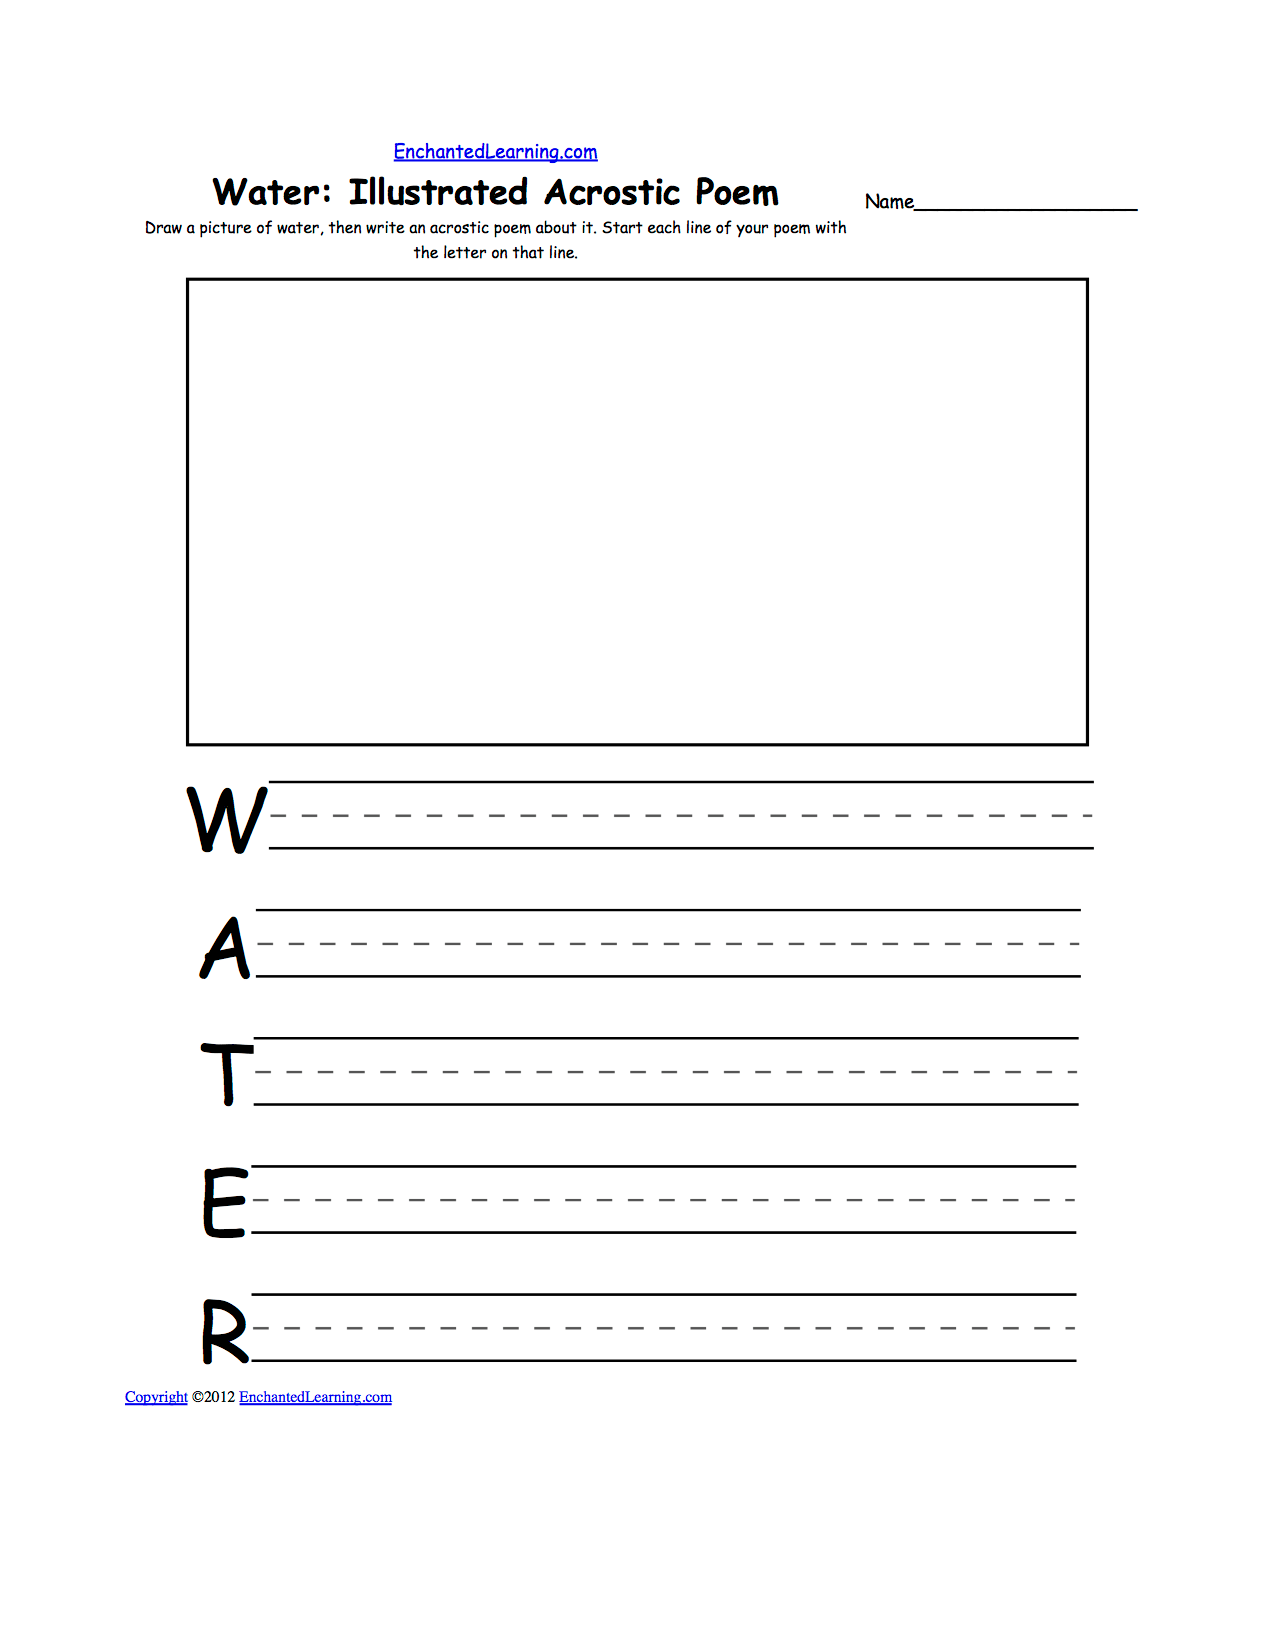 hight resolution of draw a picture of water then write an acrostic poem about it start each line of your poem with the letter on that line